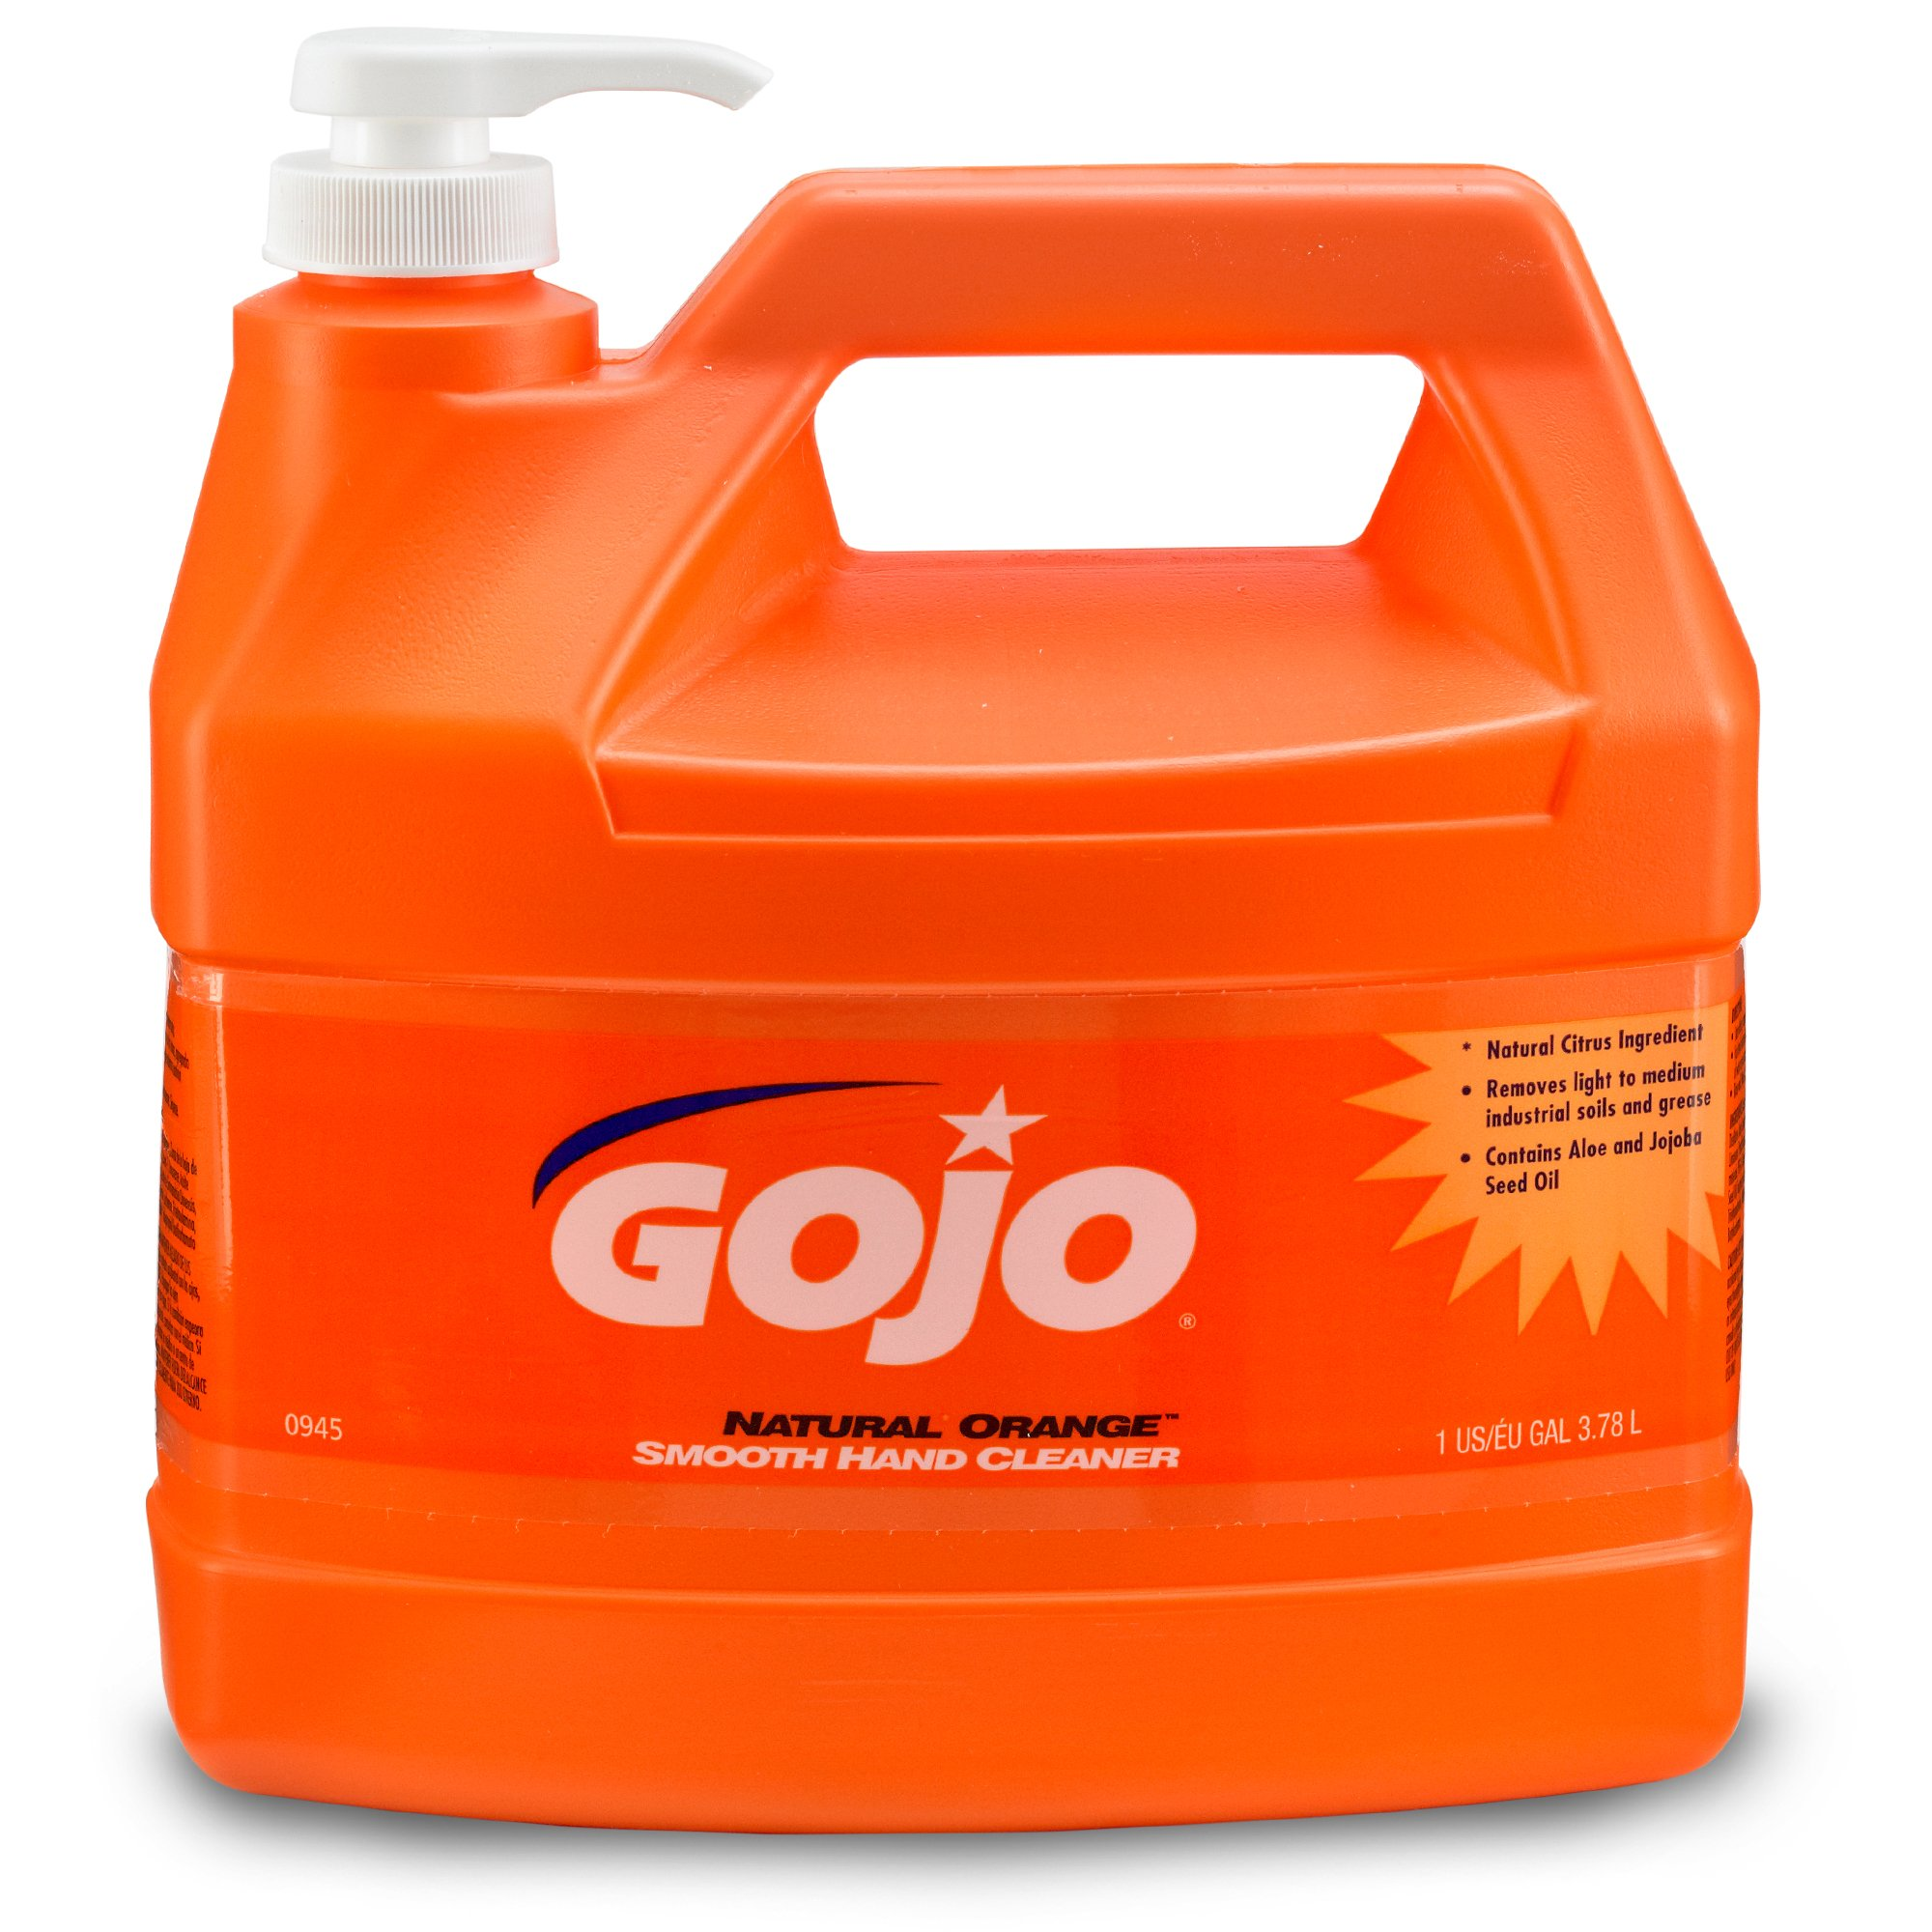 GOJO 0945-04 1-Gallon Natural Orange Smooth Hand Cleaner (4 per Case)